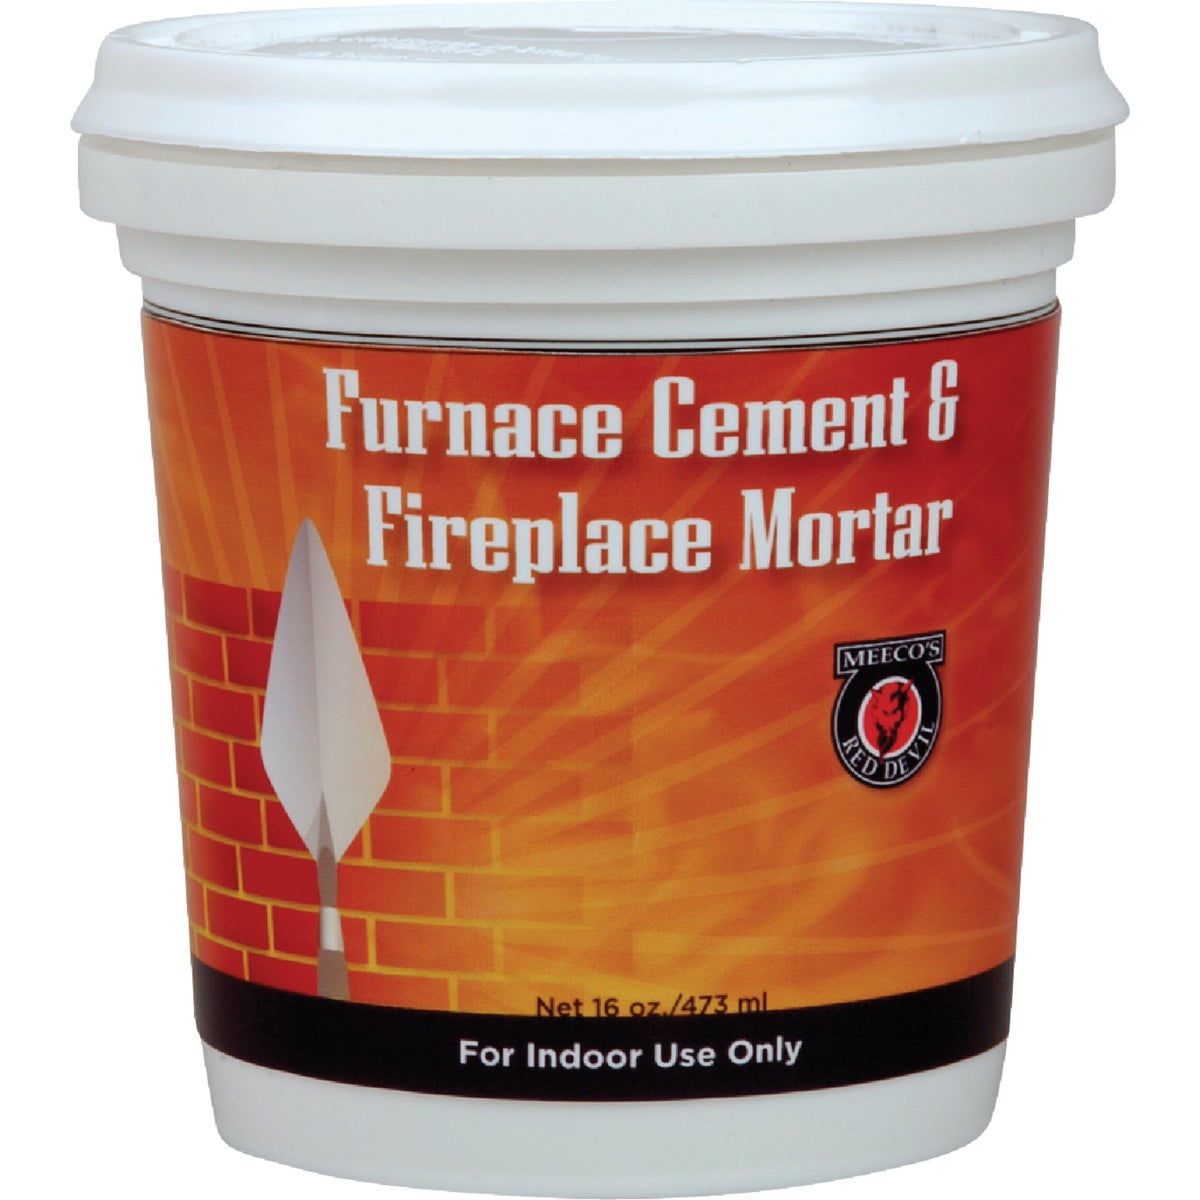 1/2PT FURNACE CEMENT - 1352 by Meeco Mfg